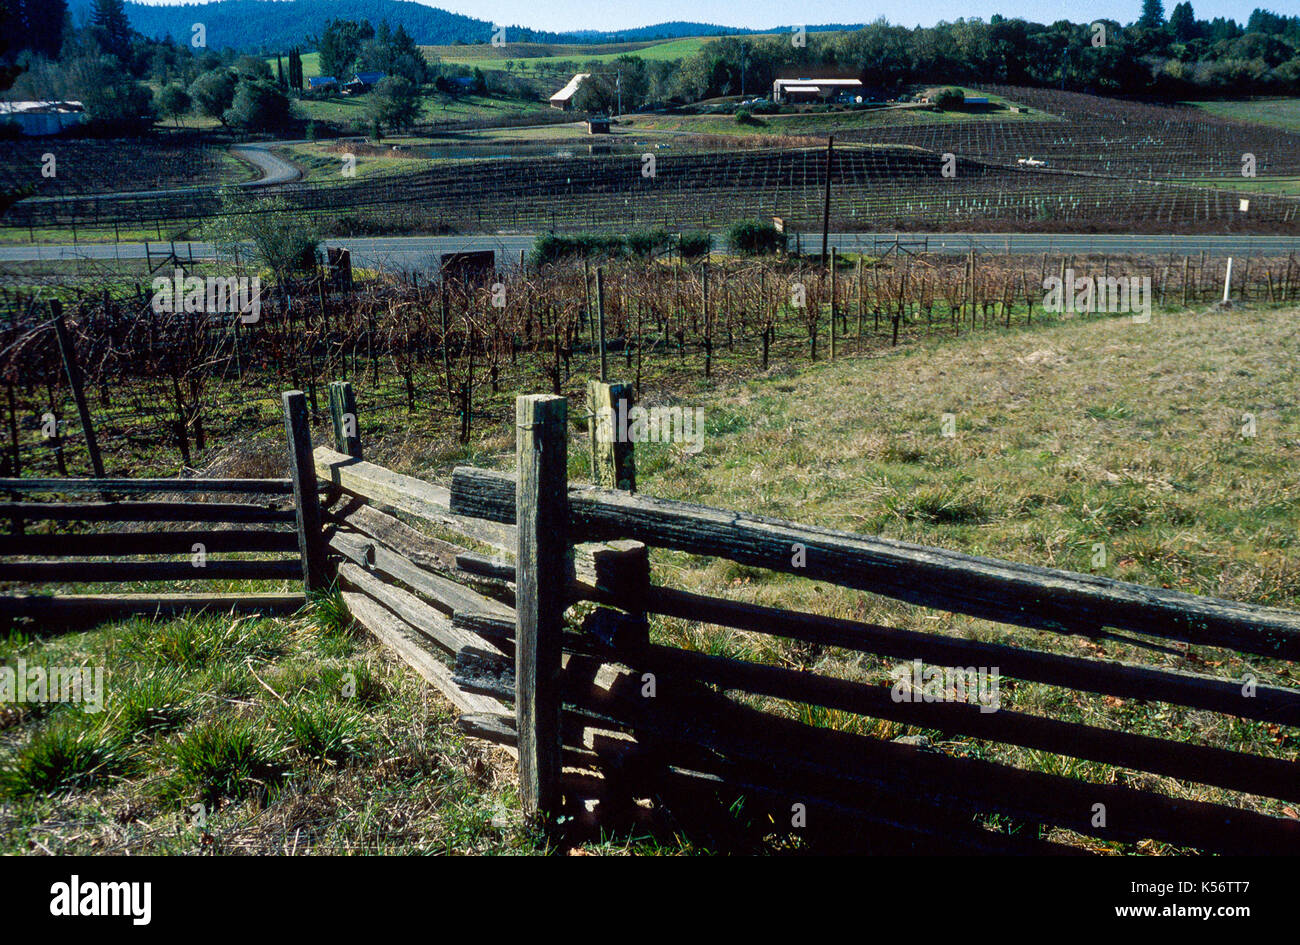 vineyards at Anderson Valley, Mendocino, CA - Stock Image